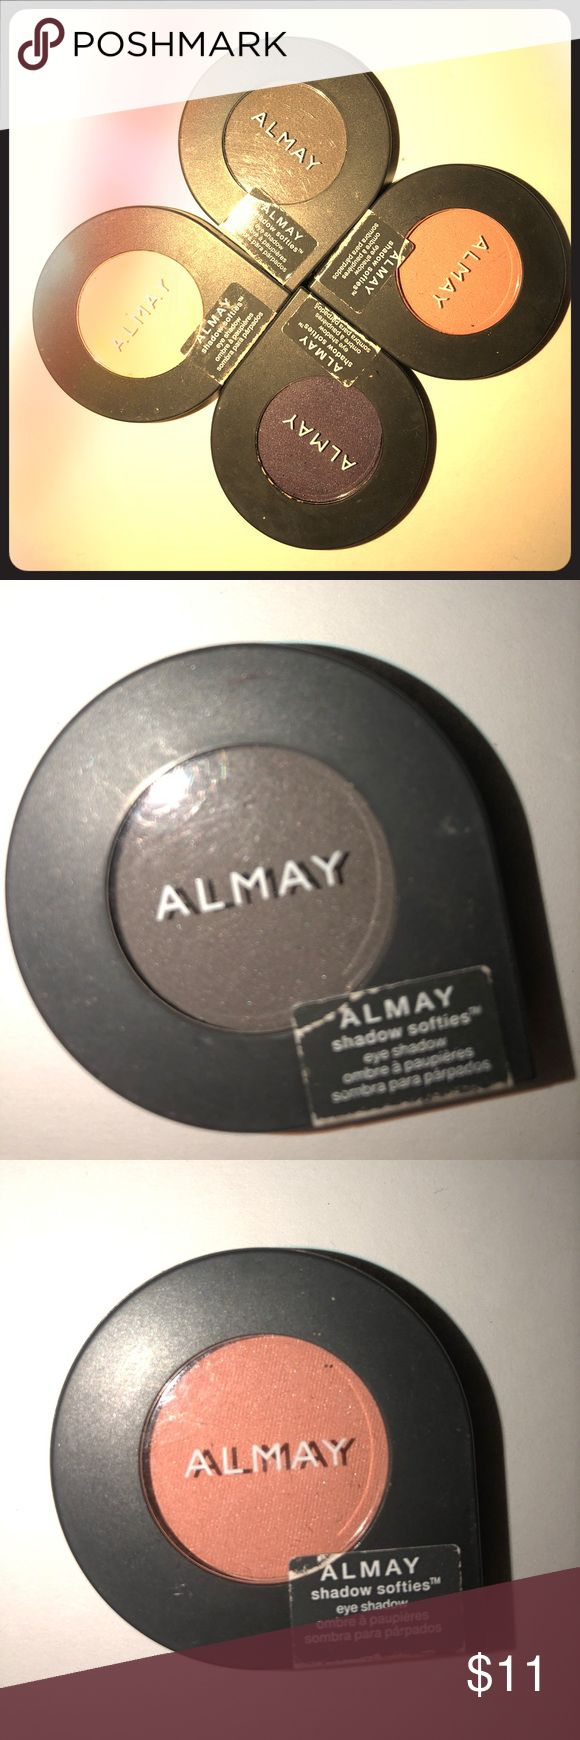 Almay eyeshadow bundle Brand new eye shadows  135 peach fuzz 140 vintage grape 155 cashmere  150 smoke Original price  $4.97 each Almay Makeup Eyeshadow